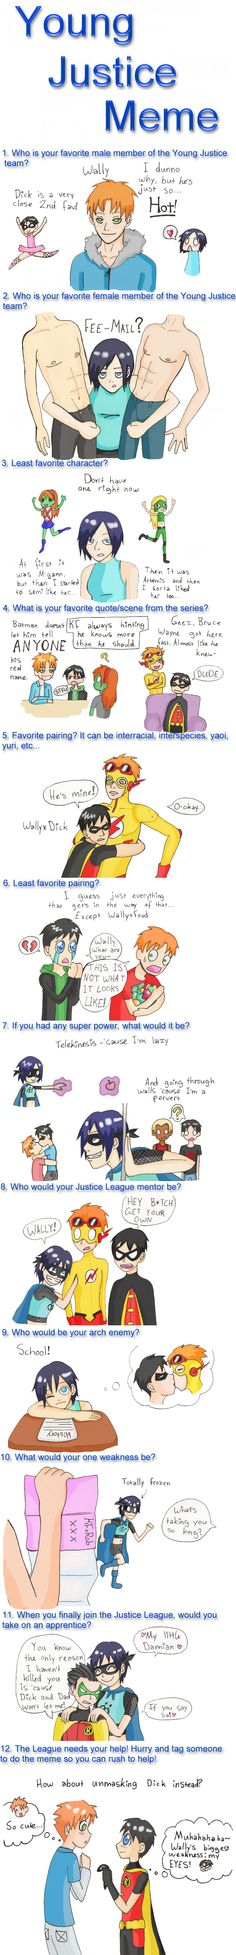 Young justice meme by ~Saegigmon on deviantART